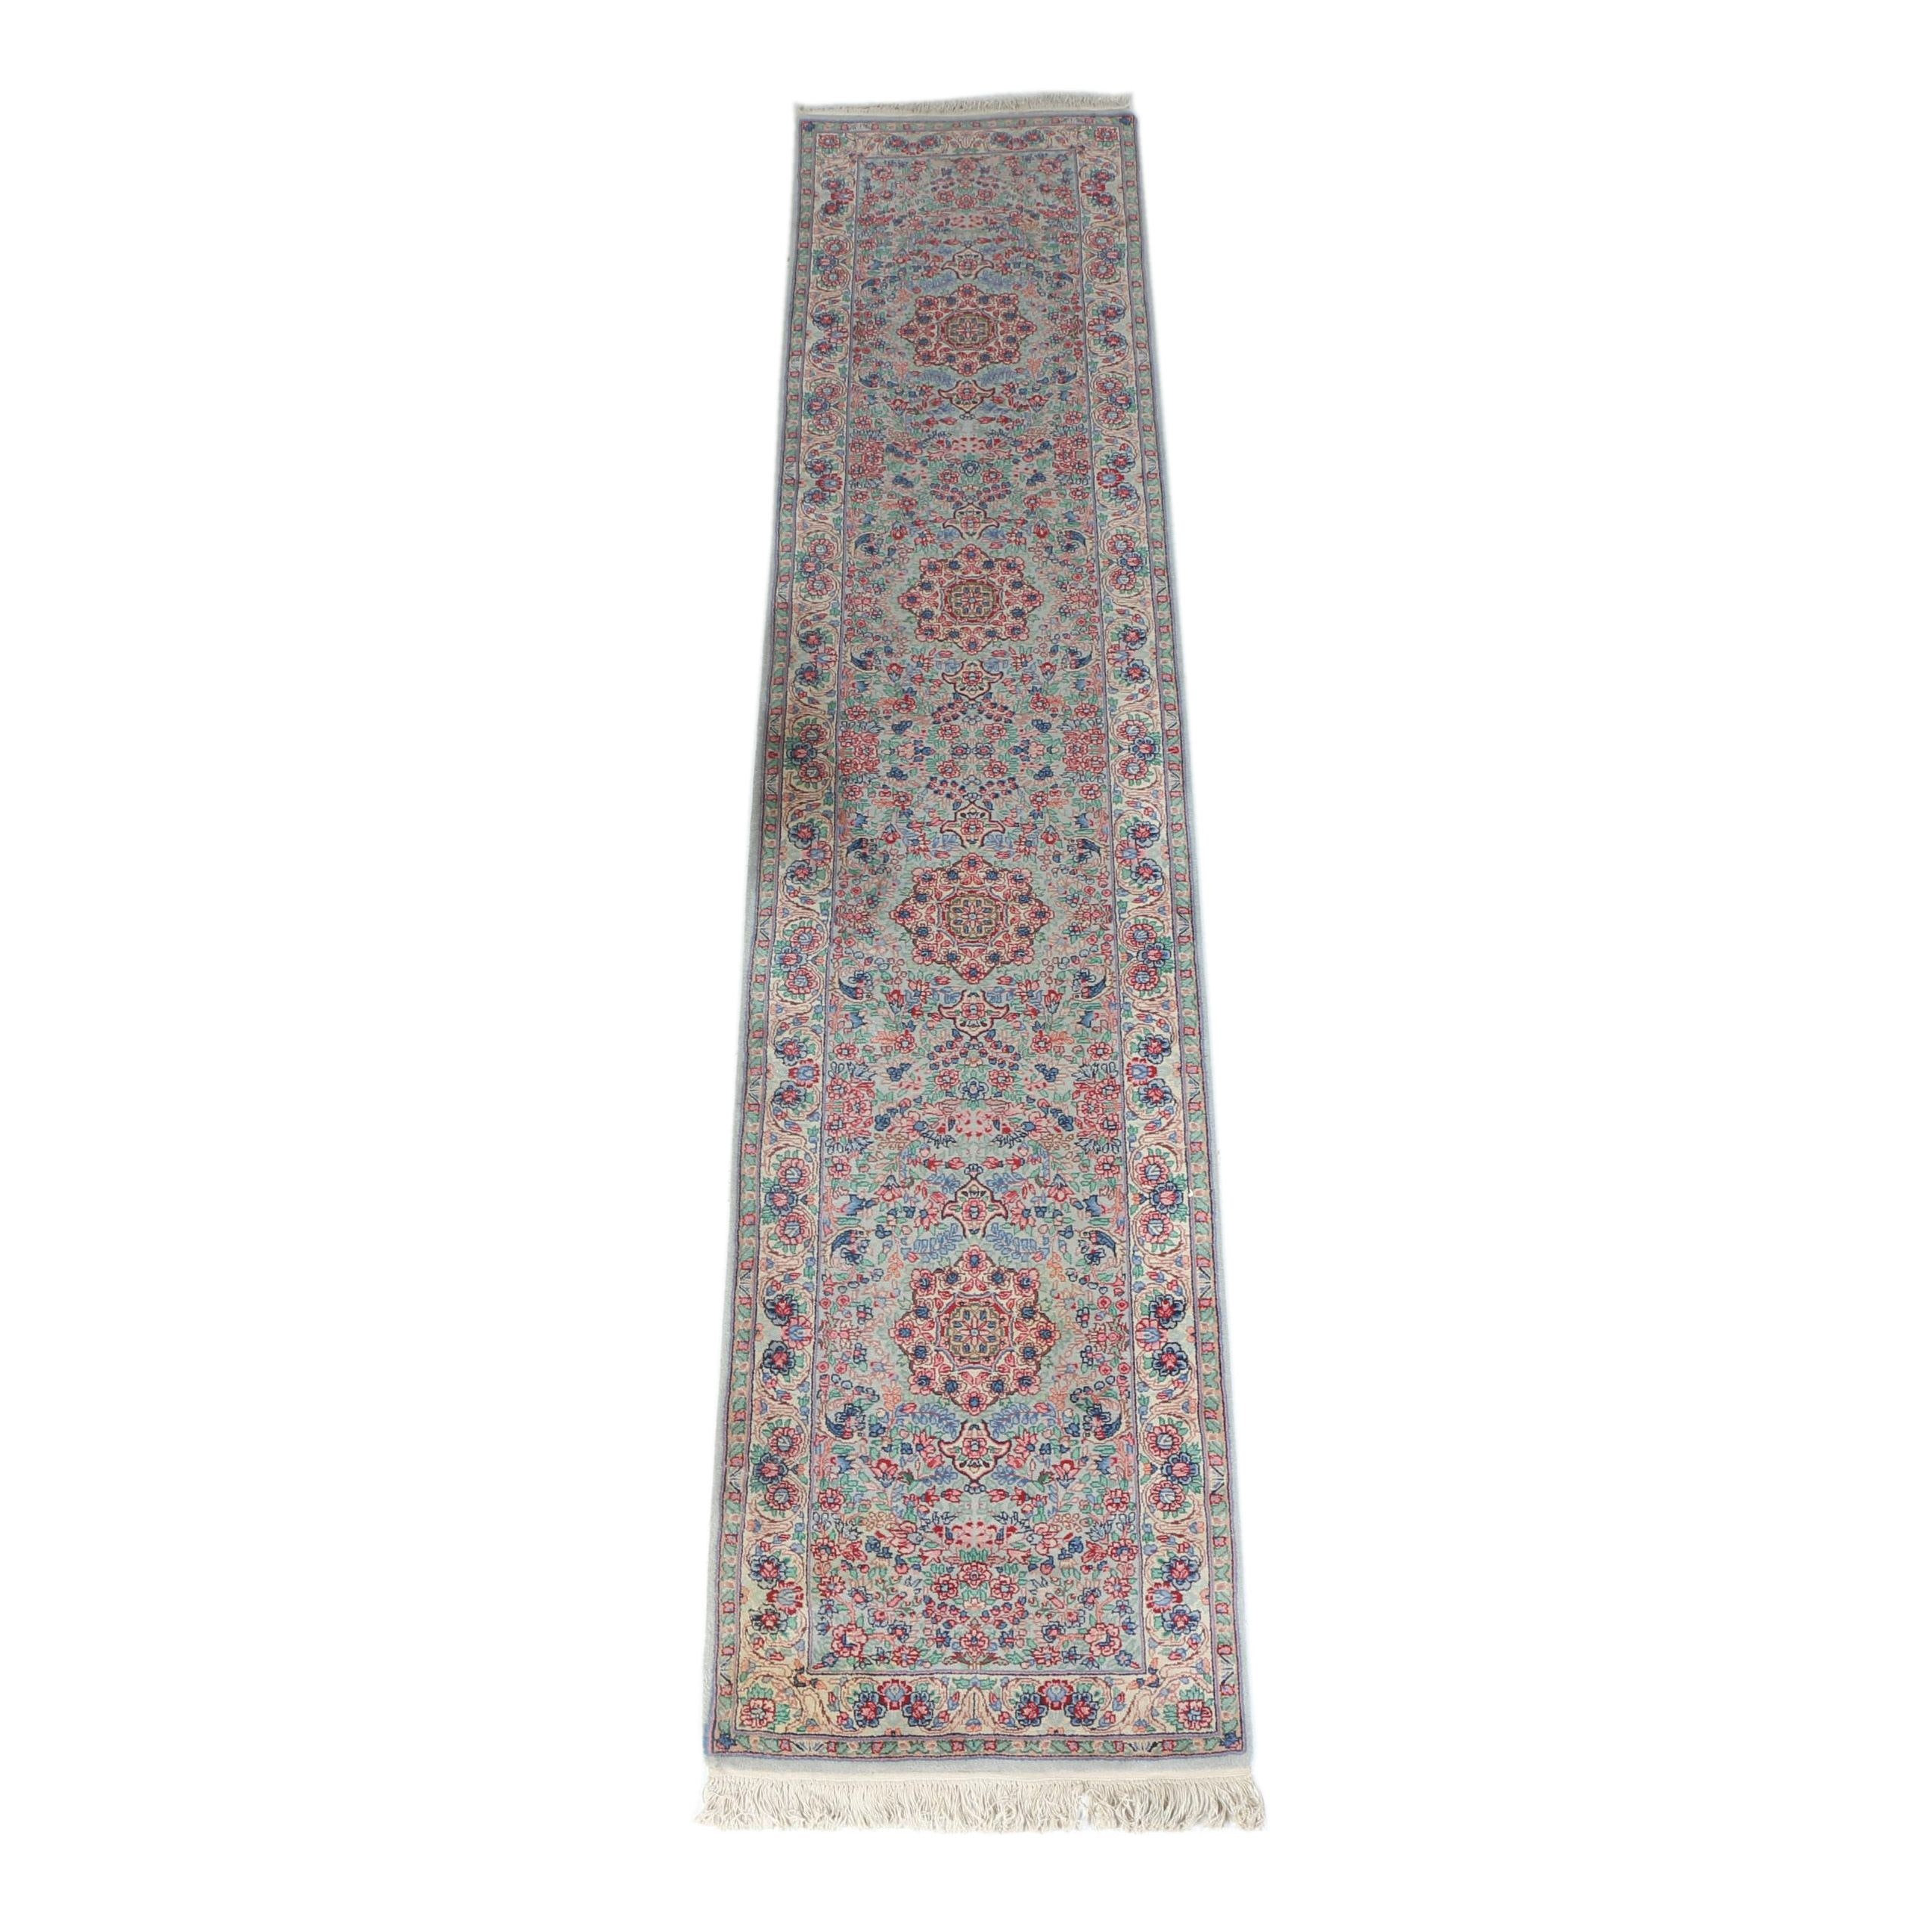 Finely Hand-Knotted Kerman-Style Wool Carpet Runner